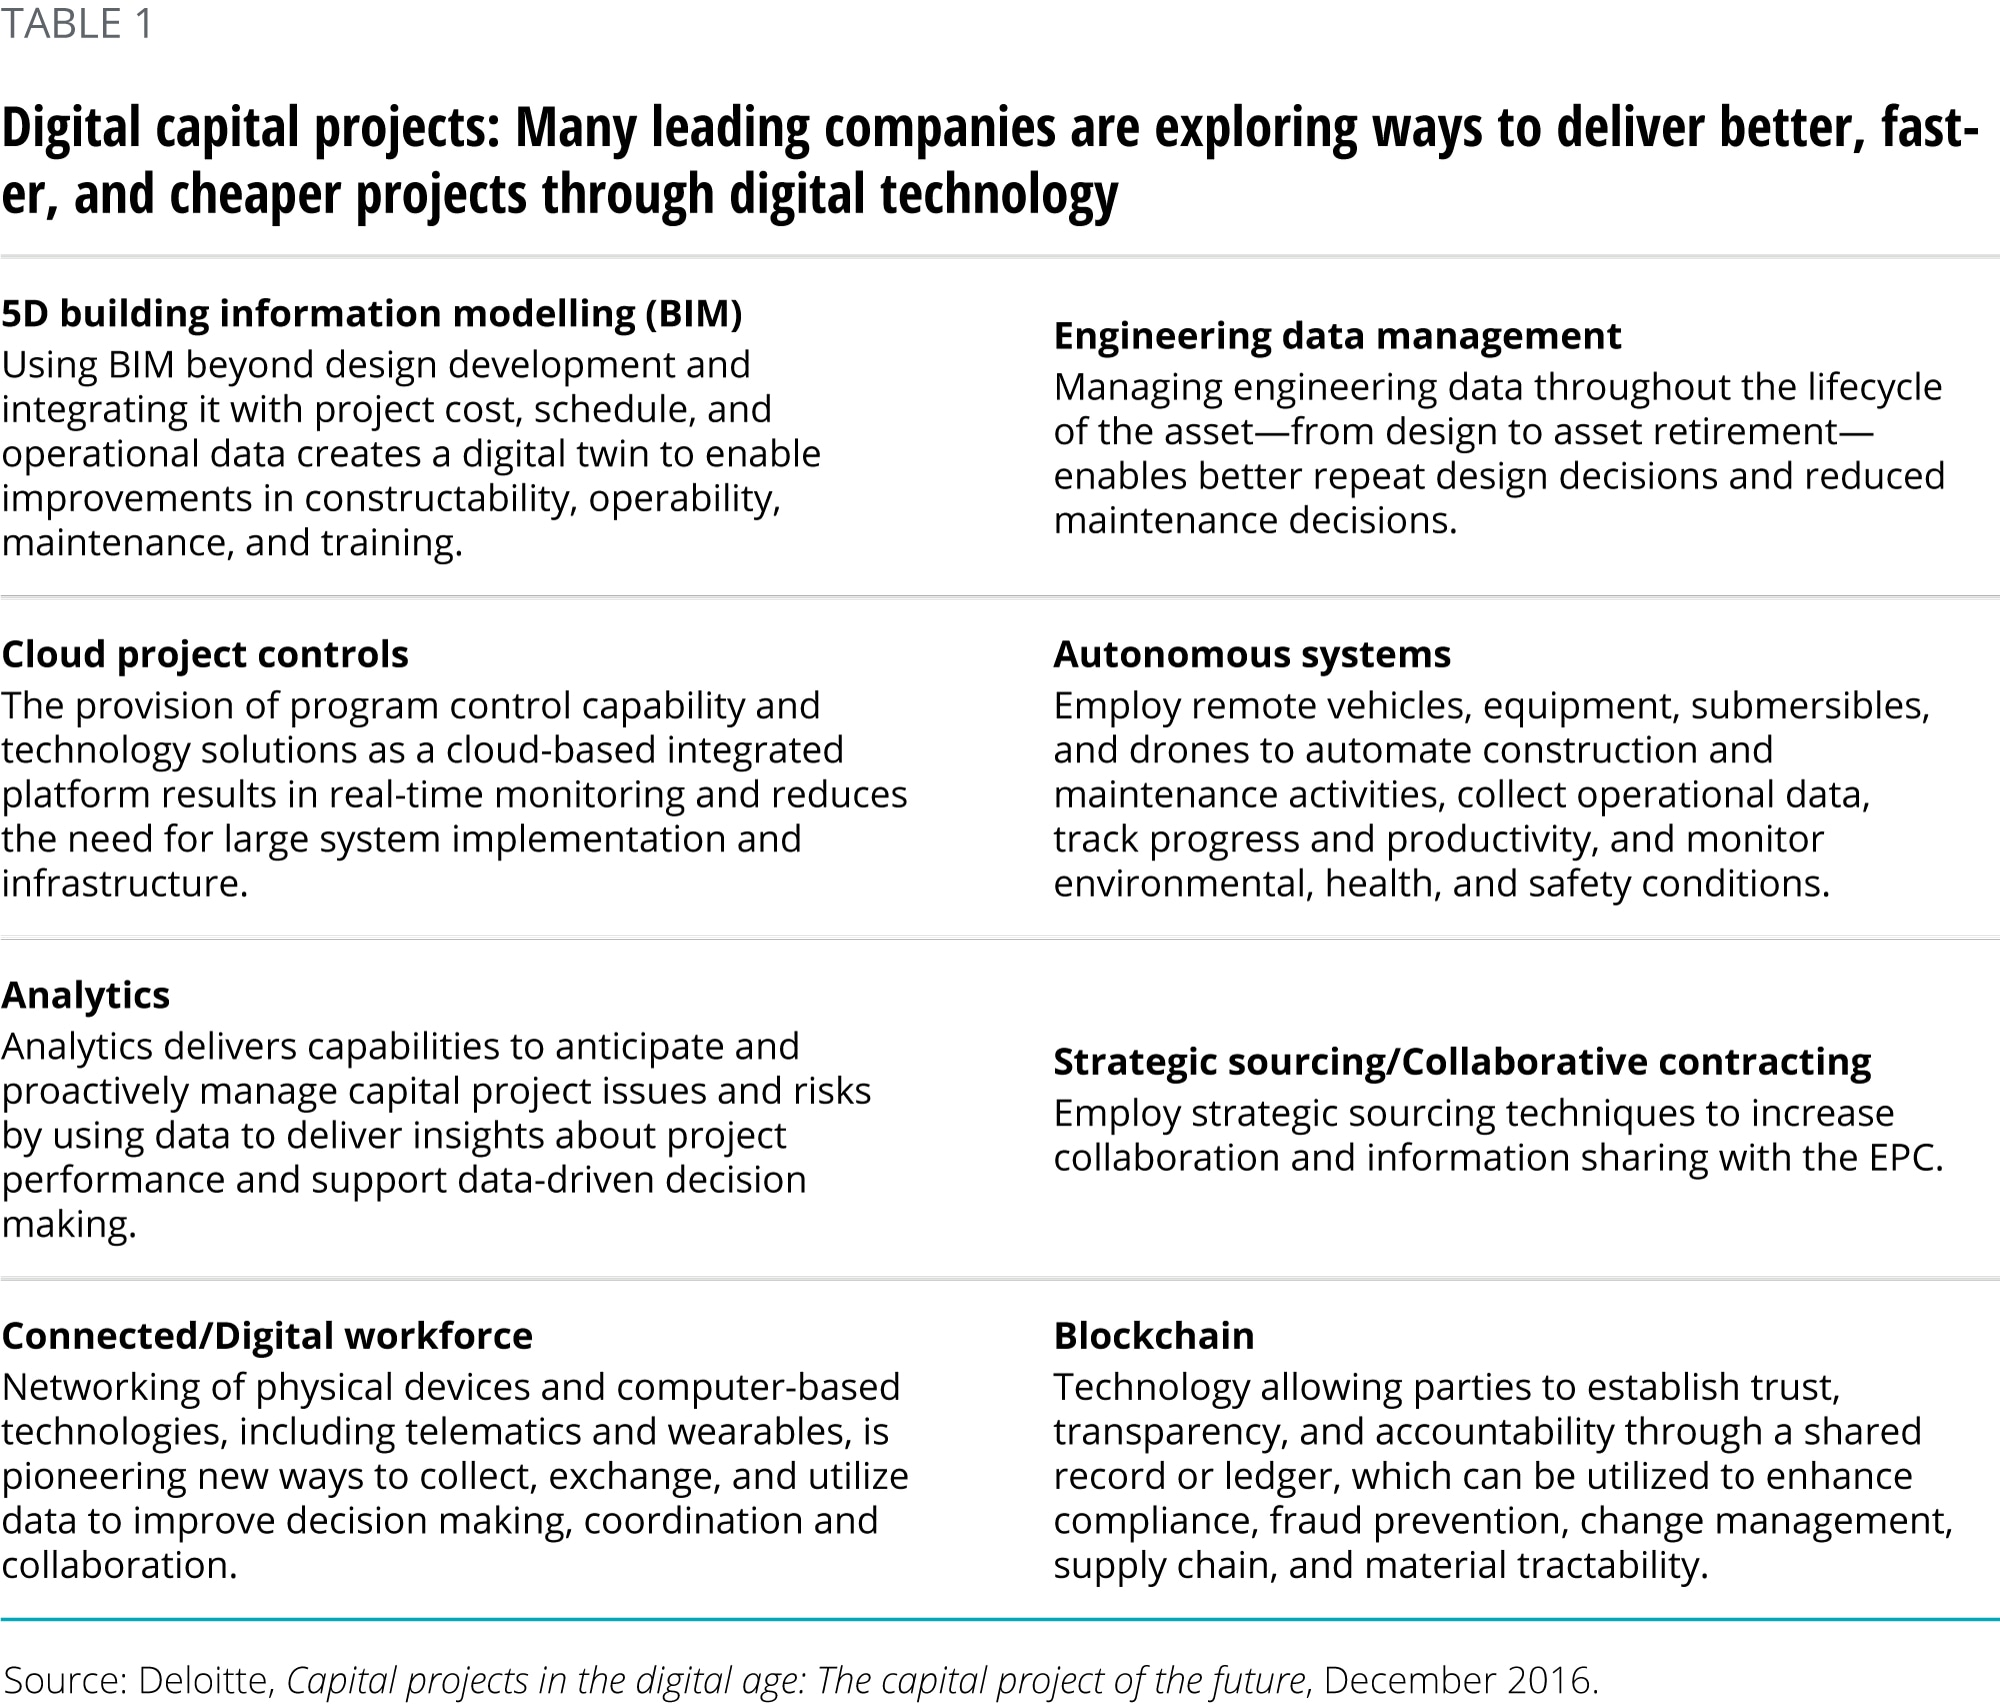 Digital capital projects: Many leading companies are exploring ways to deliver better, faster, and cheaper projects through digital technology